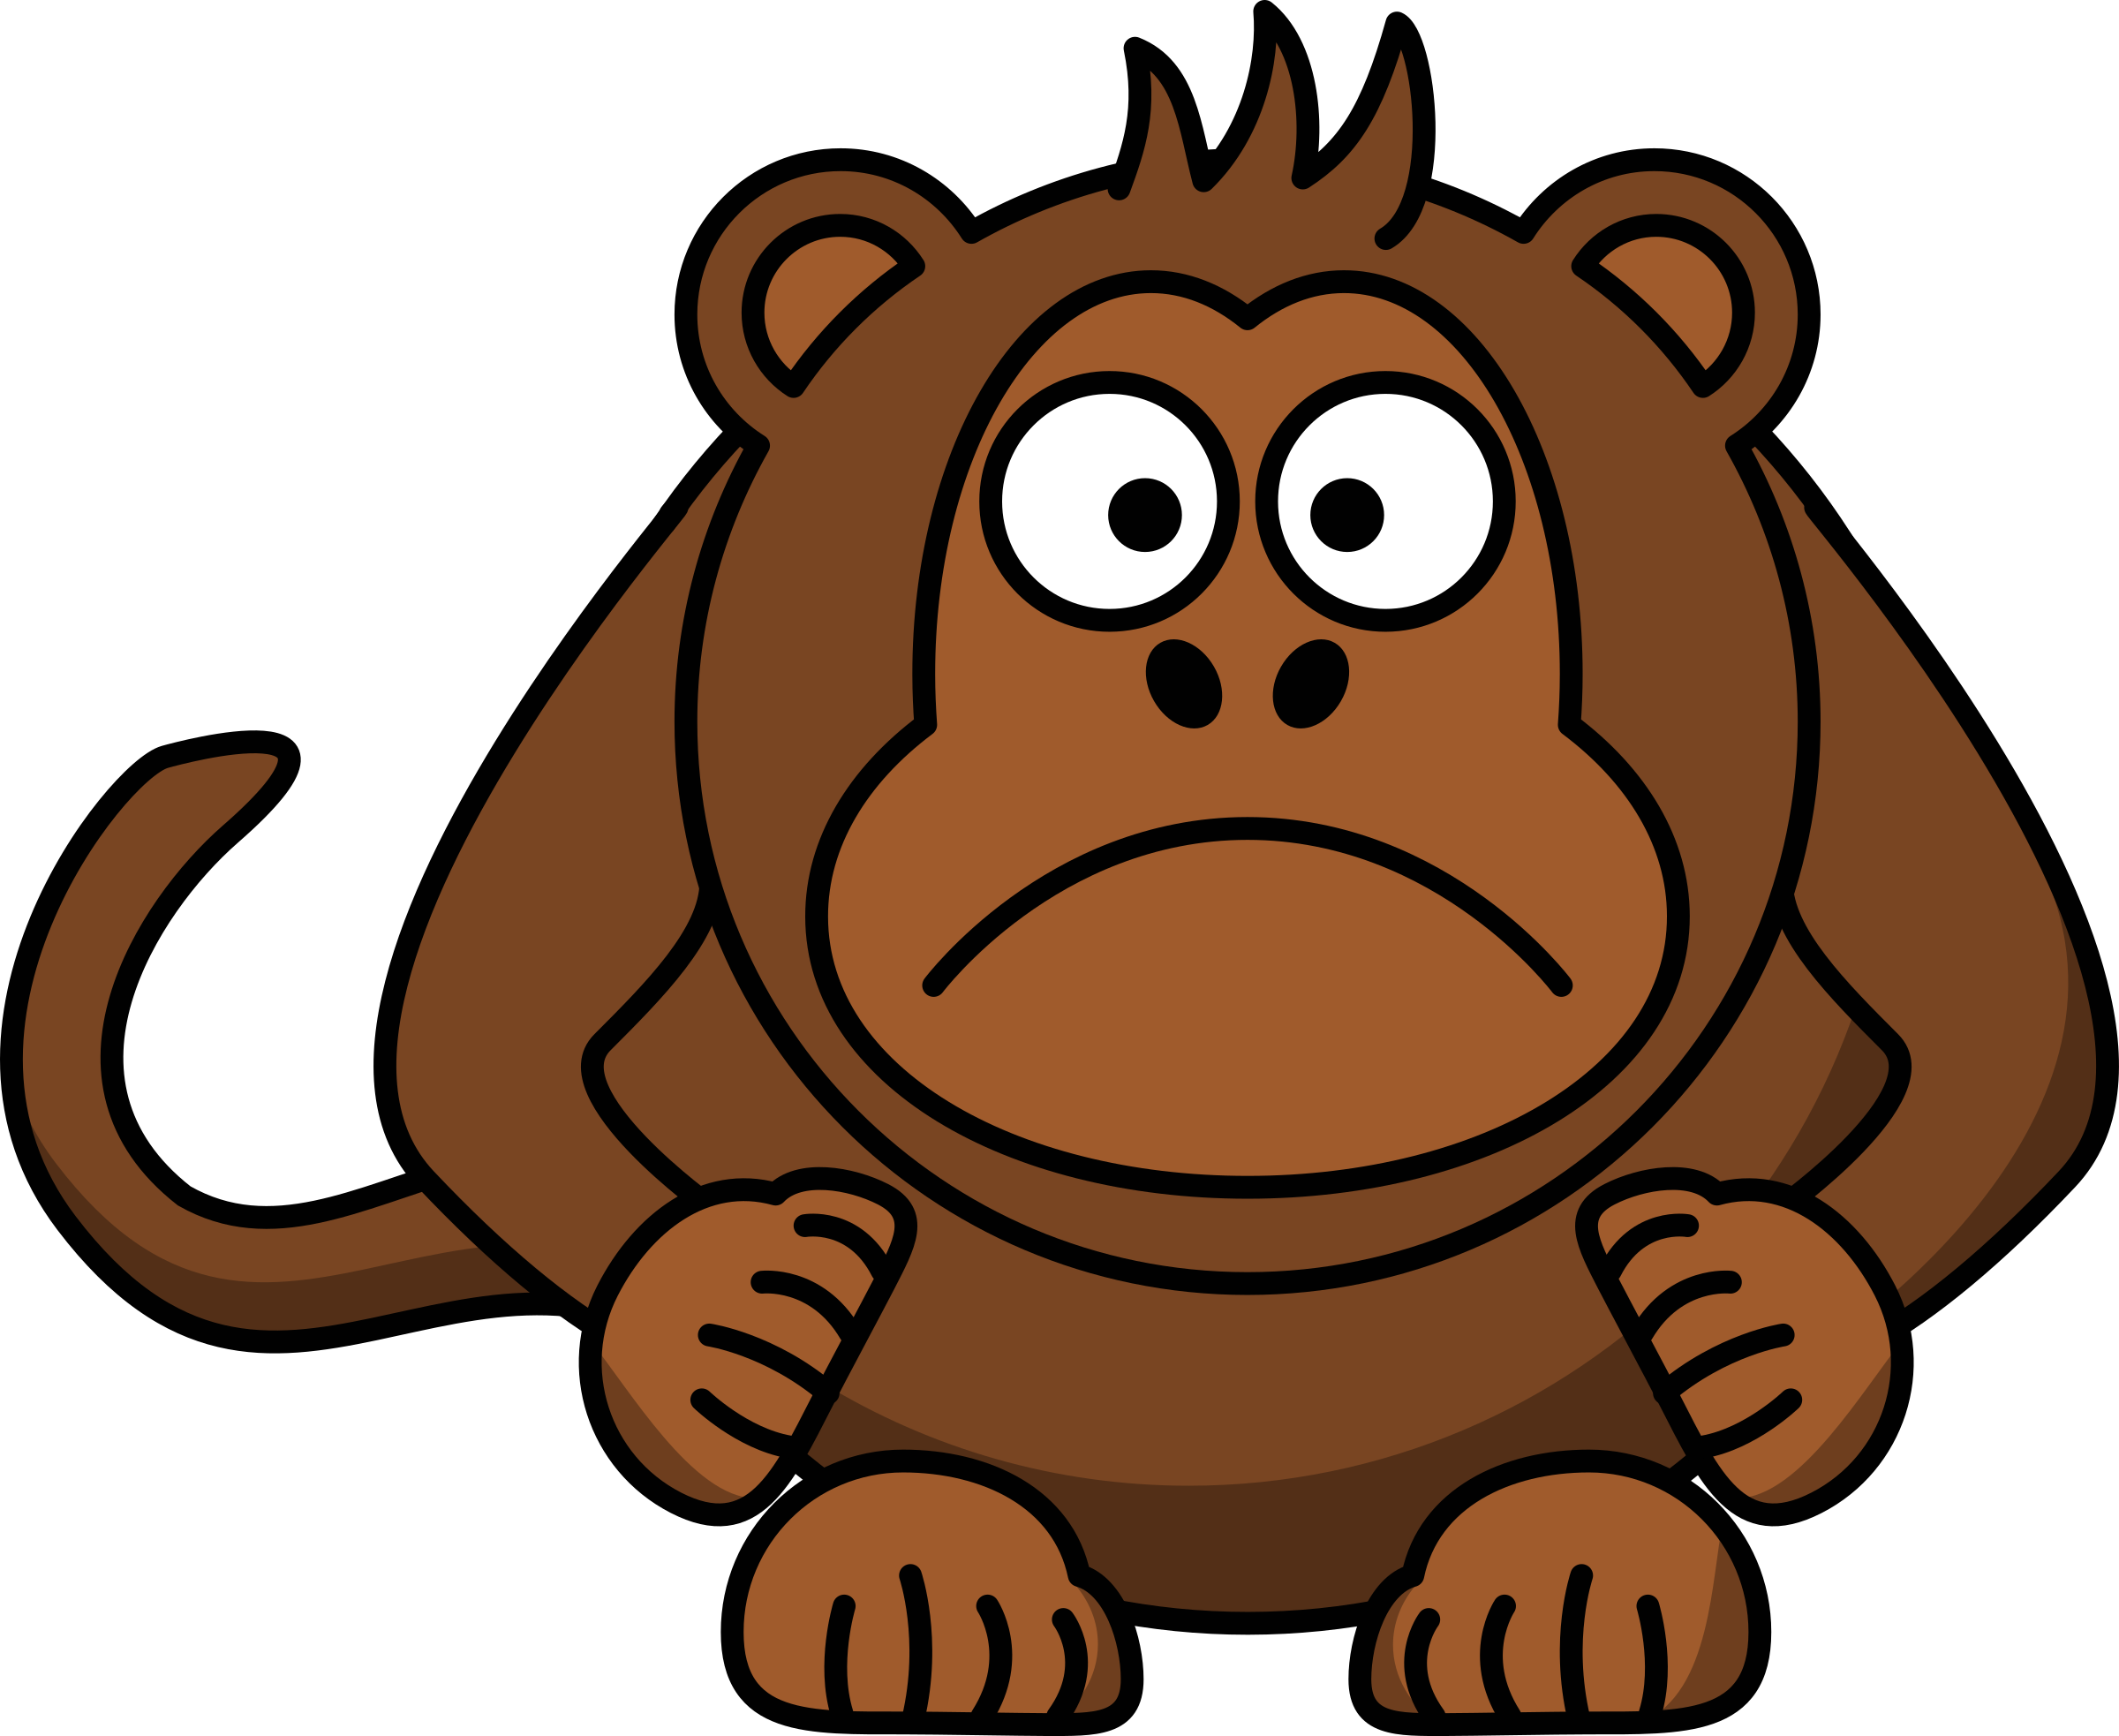 Angry cartoon png. Monkey icons free and